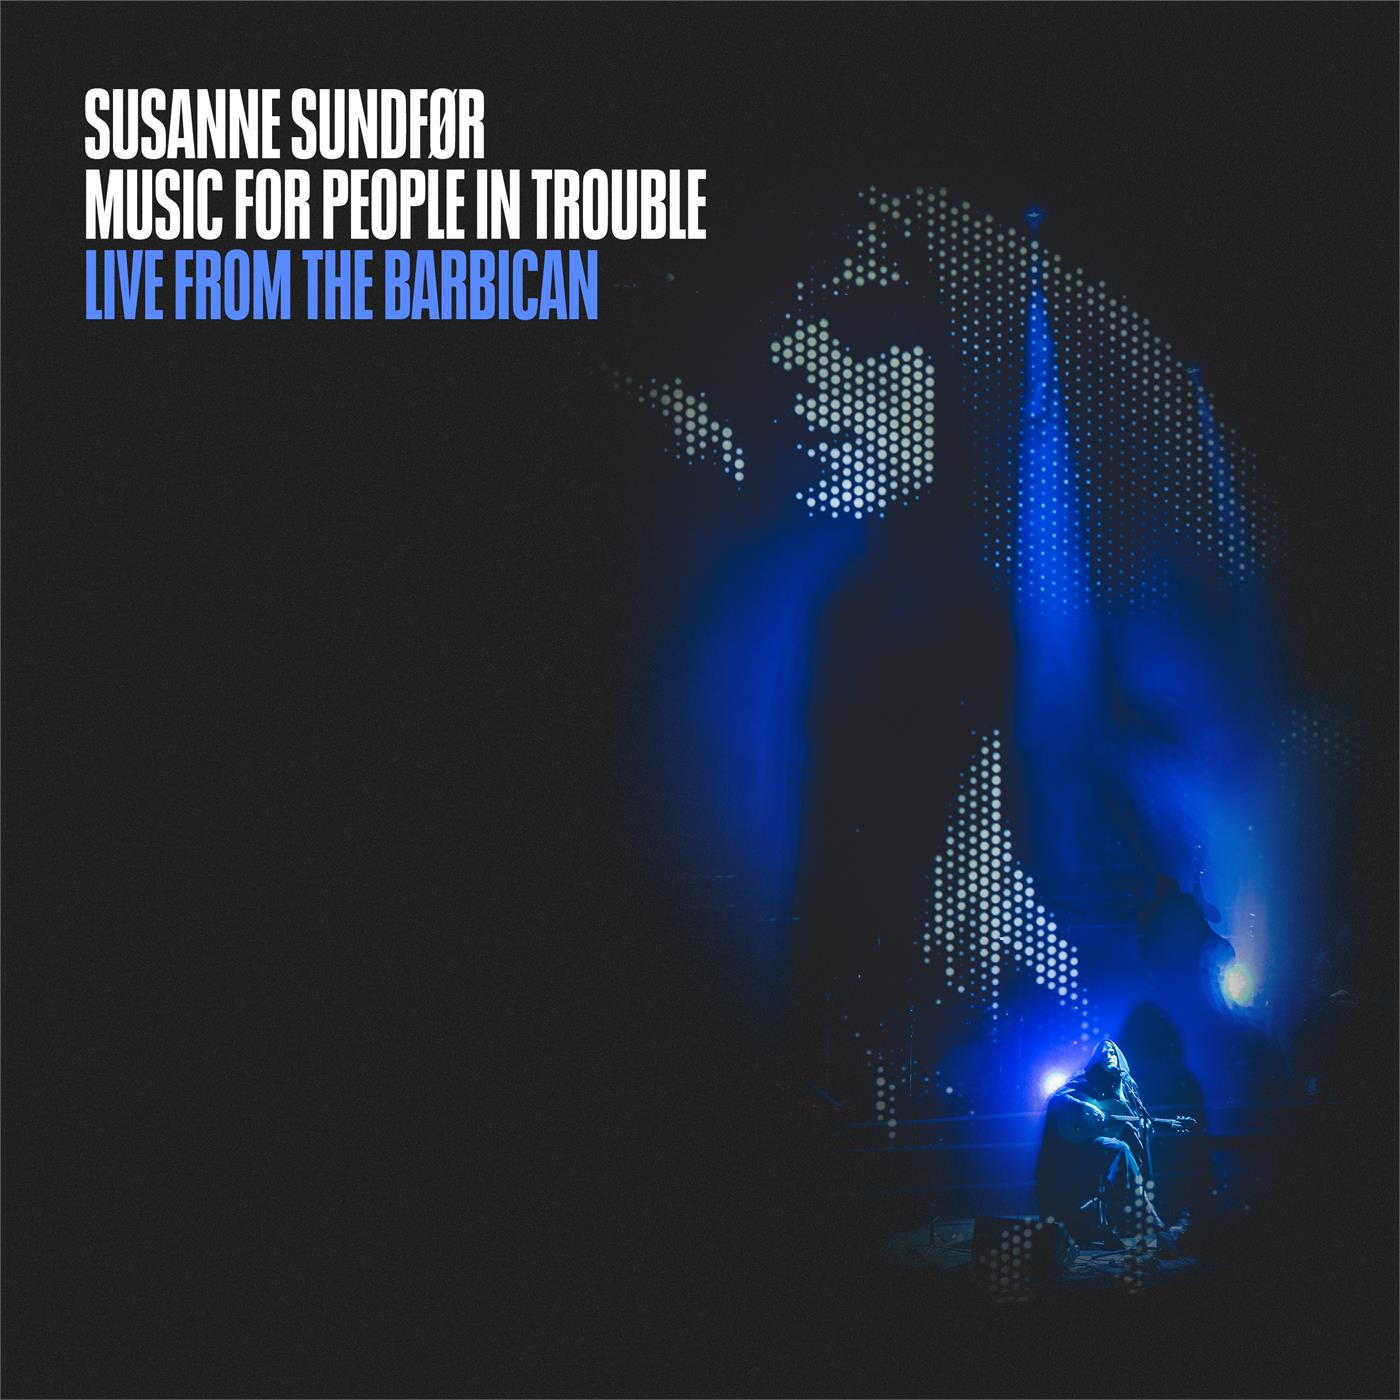 Susanne Sundfør - Music For People In Trouble: Live From The Barbican [2xLP]